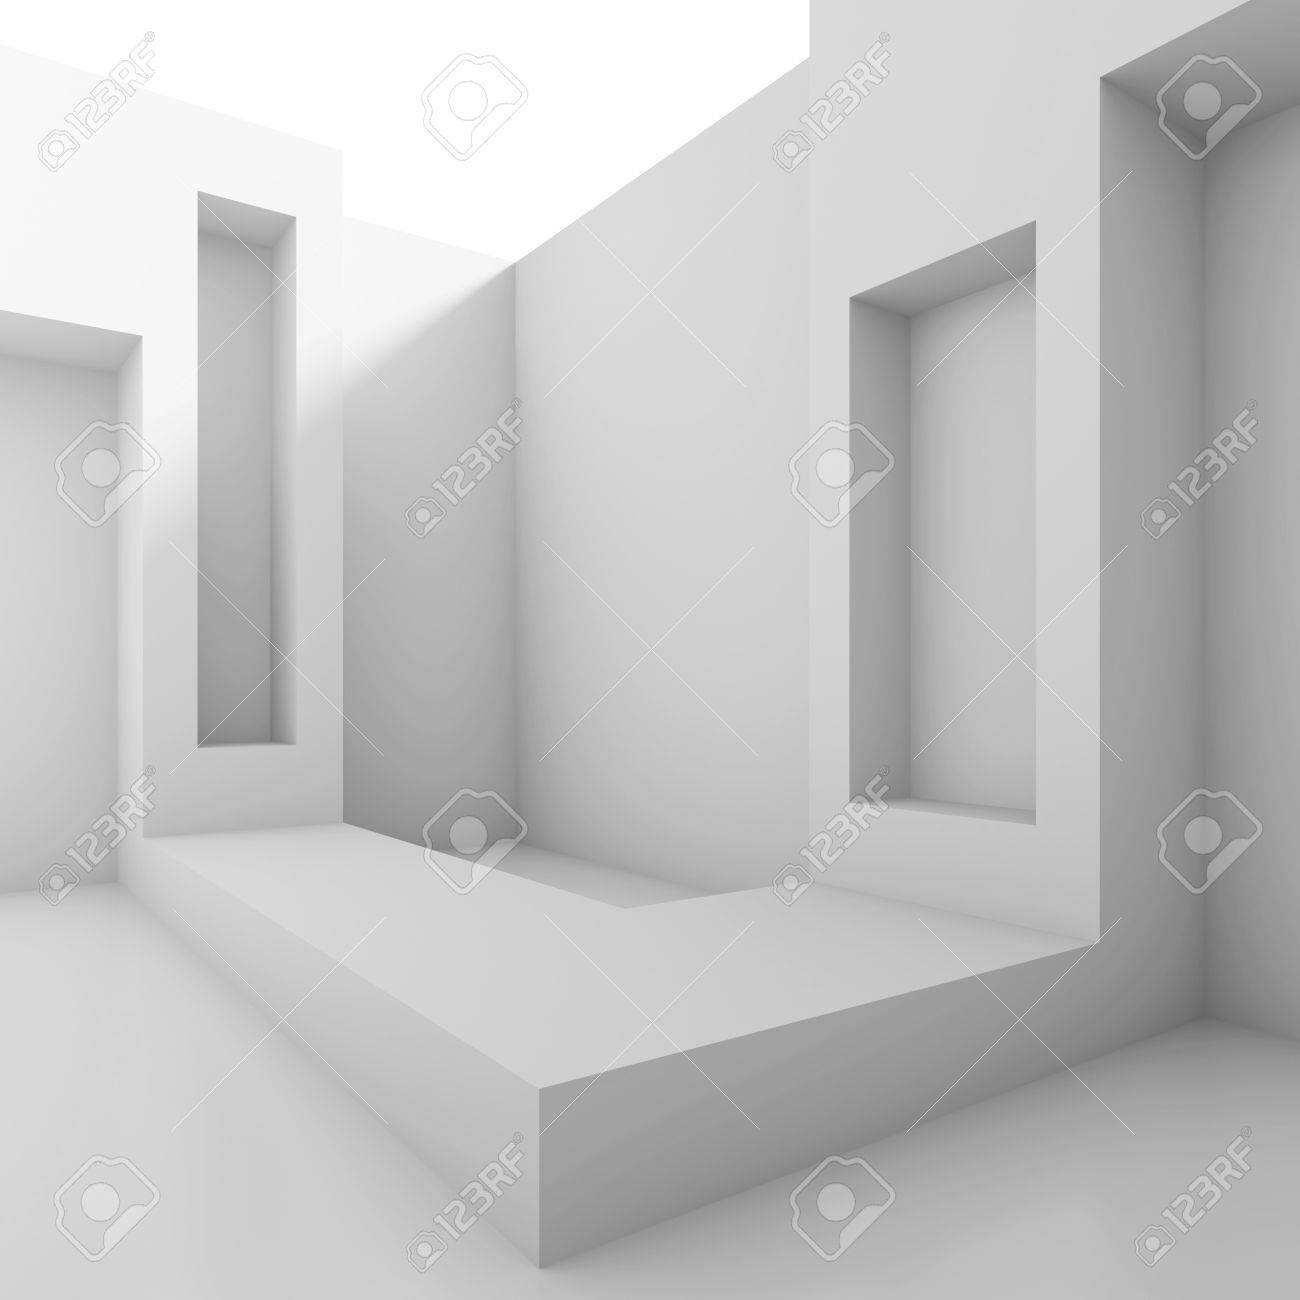 3d White Abstract Architecture Background Stock Photo - 18719061